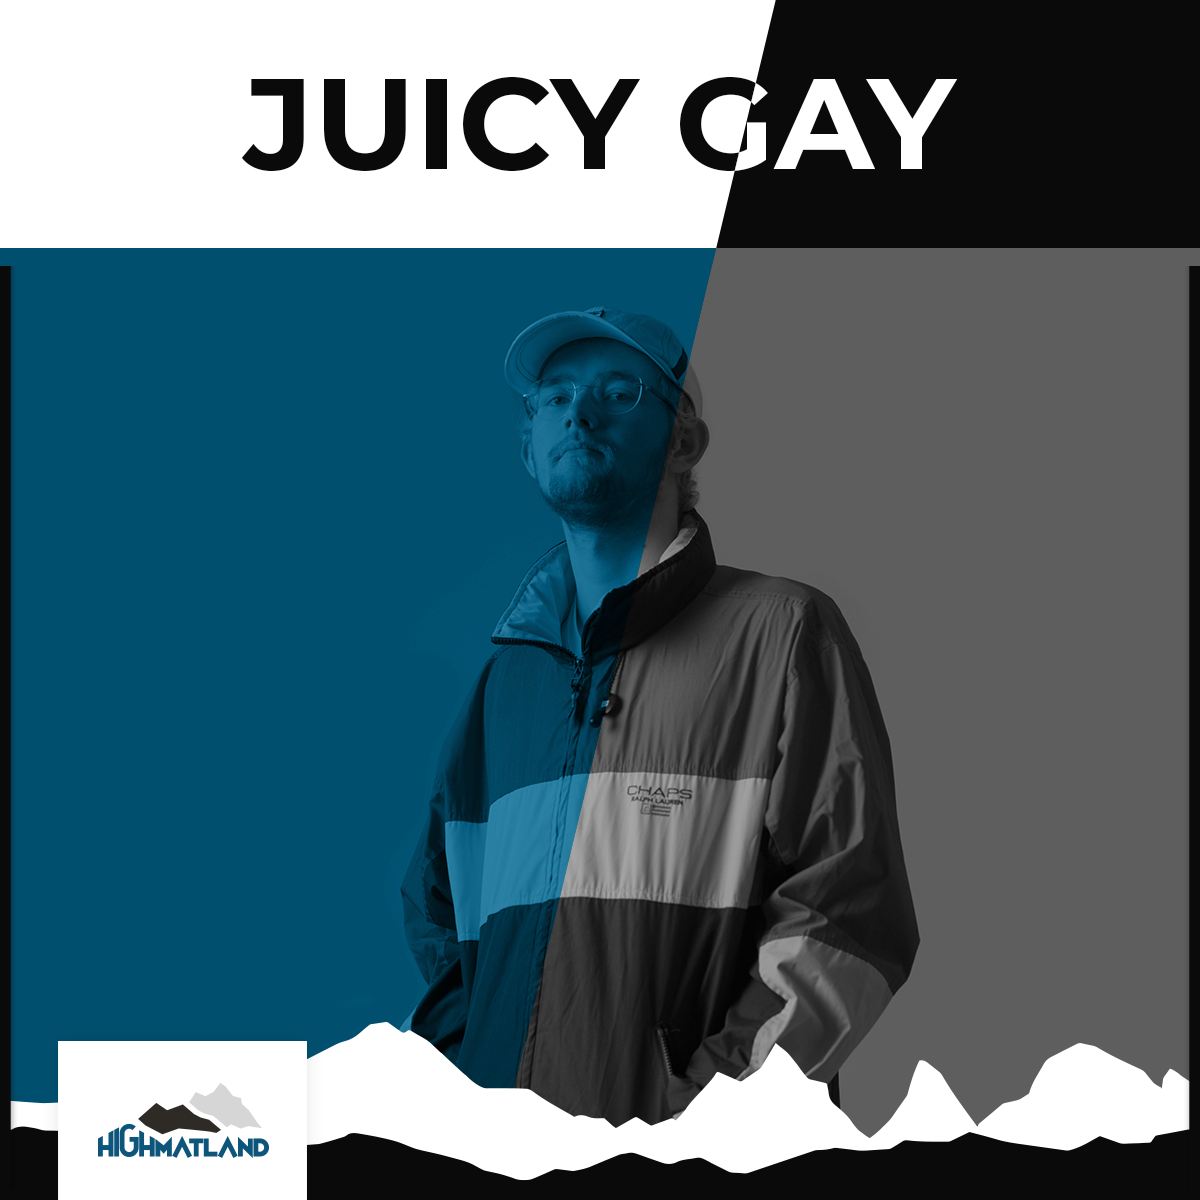 Highmatland Festival Juicy